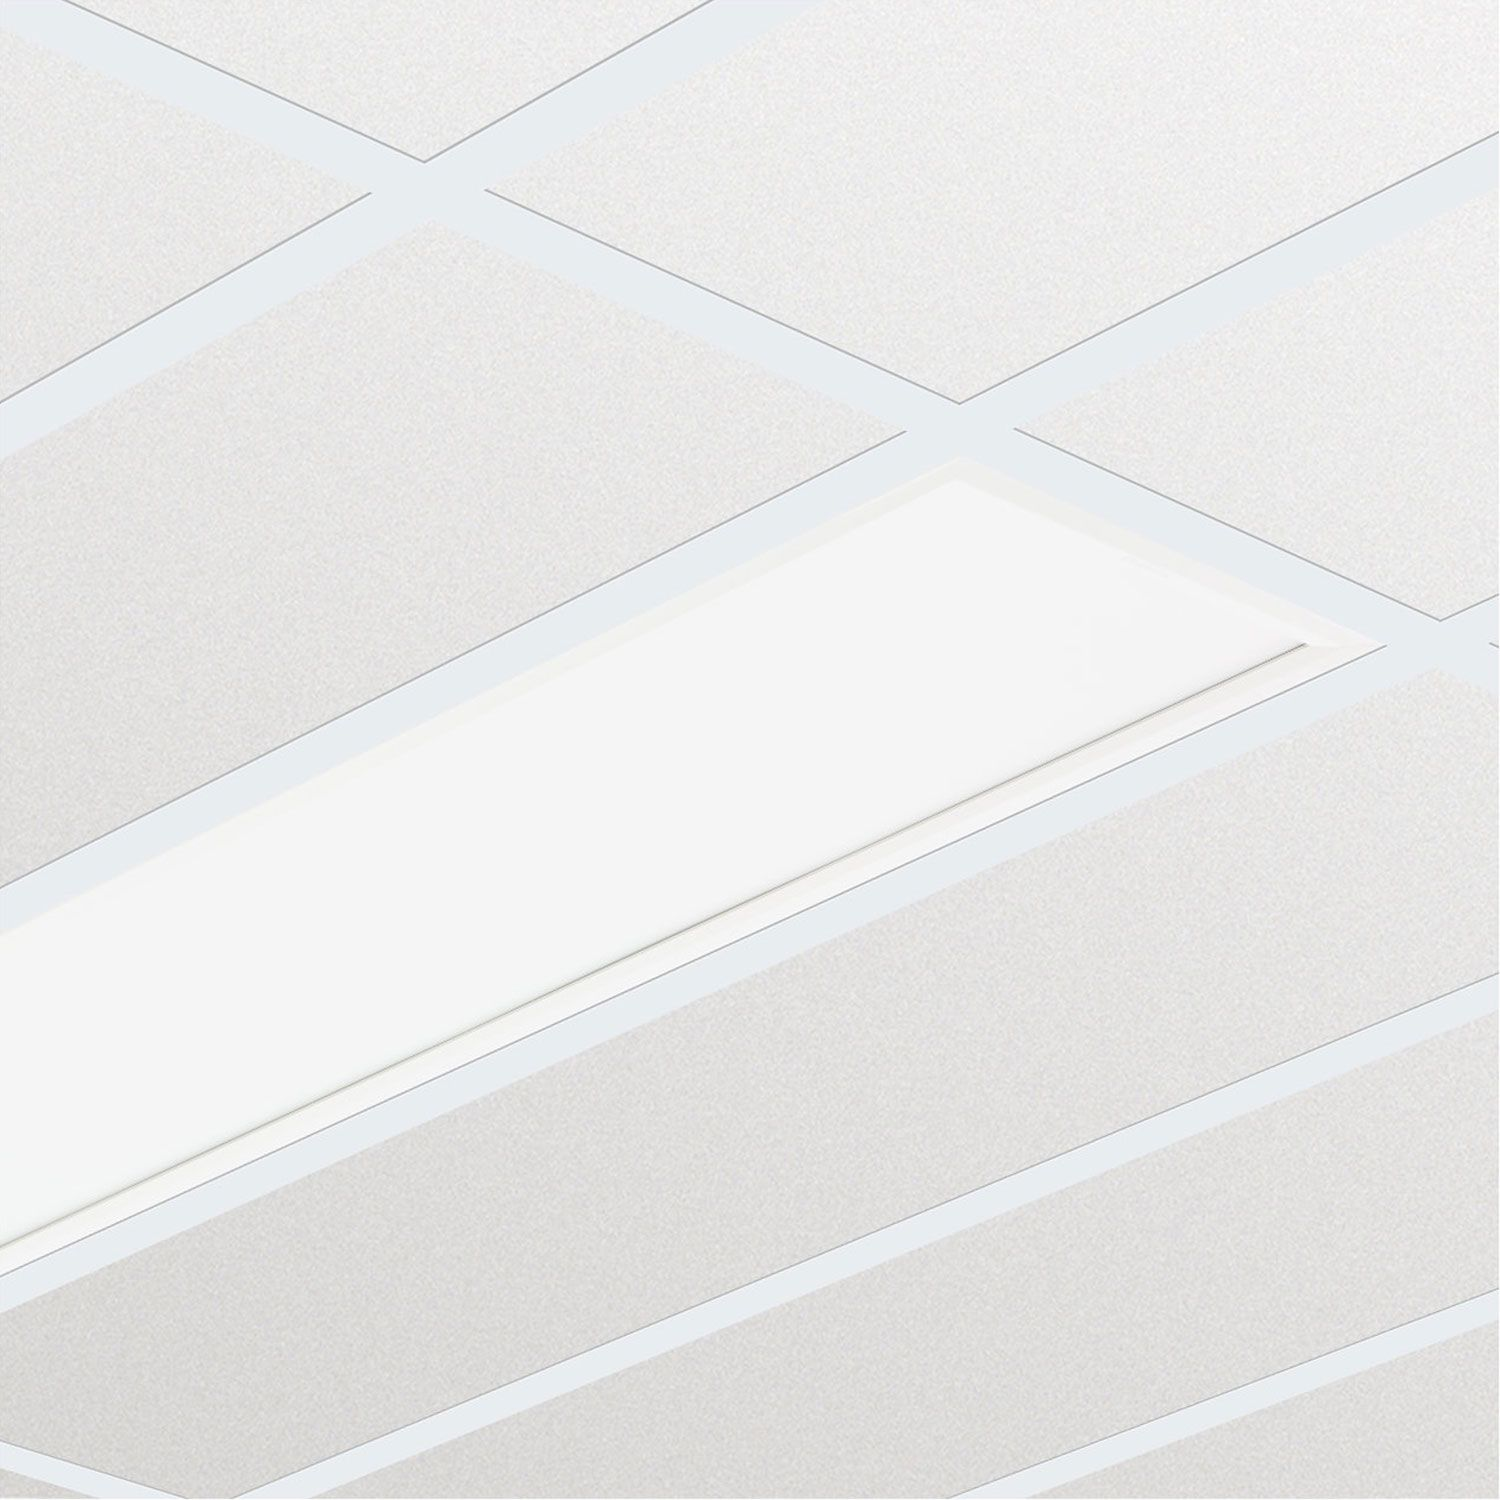 Philips Panel LED CoreLine RC132V G4 30x120cm 4000K 3600lm UGR <19 | Módulo de Emergencia 3H - Dali Regulable - Blanco Frio - Reemplazo 2x36W